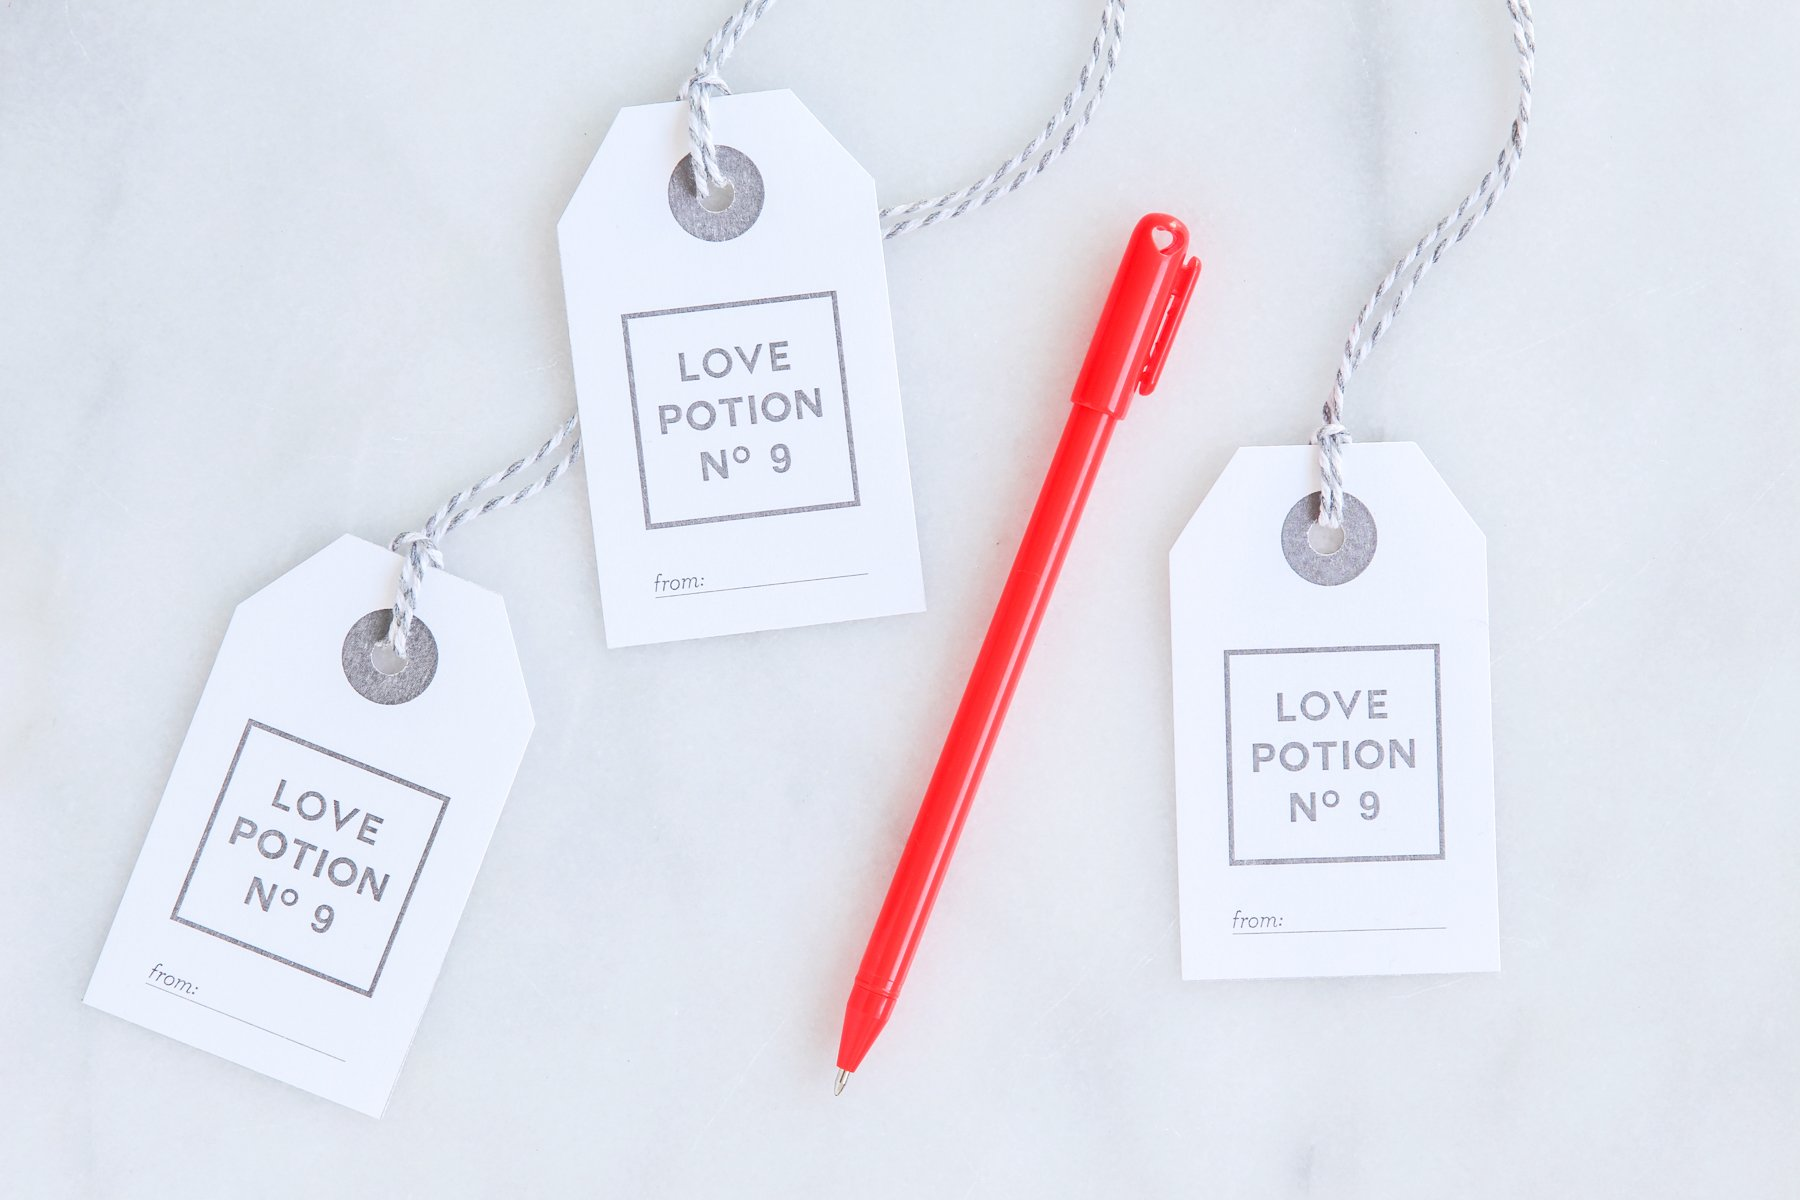 Love Potion No. 9 Valentines Gift Tag free printable from @PagingSupermom